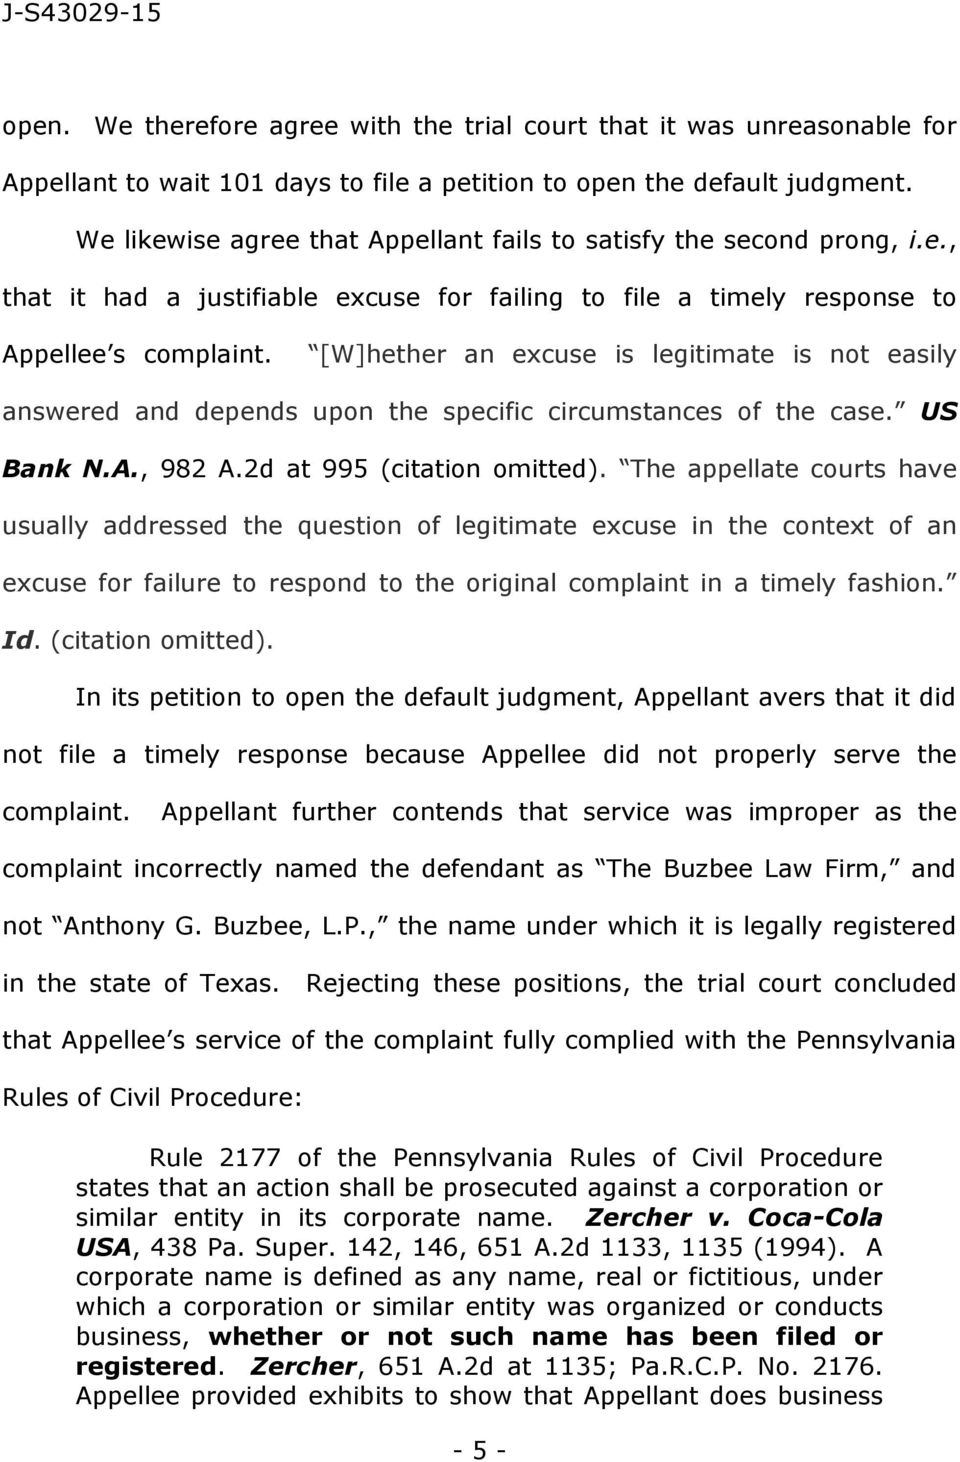 [W]hether an excuse is legitimate is not easily answered and depends upon the specific circumstances of the case. US Bank N.A., 982 A.2d at 995 (citation omitted).